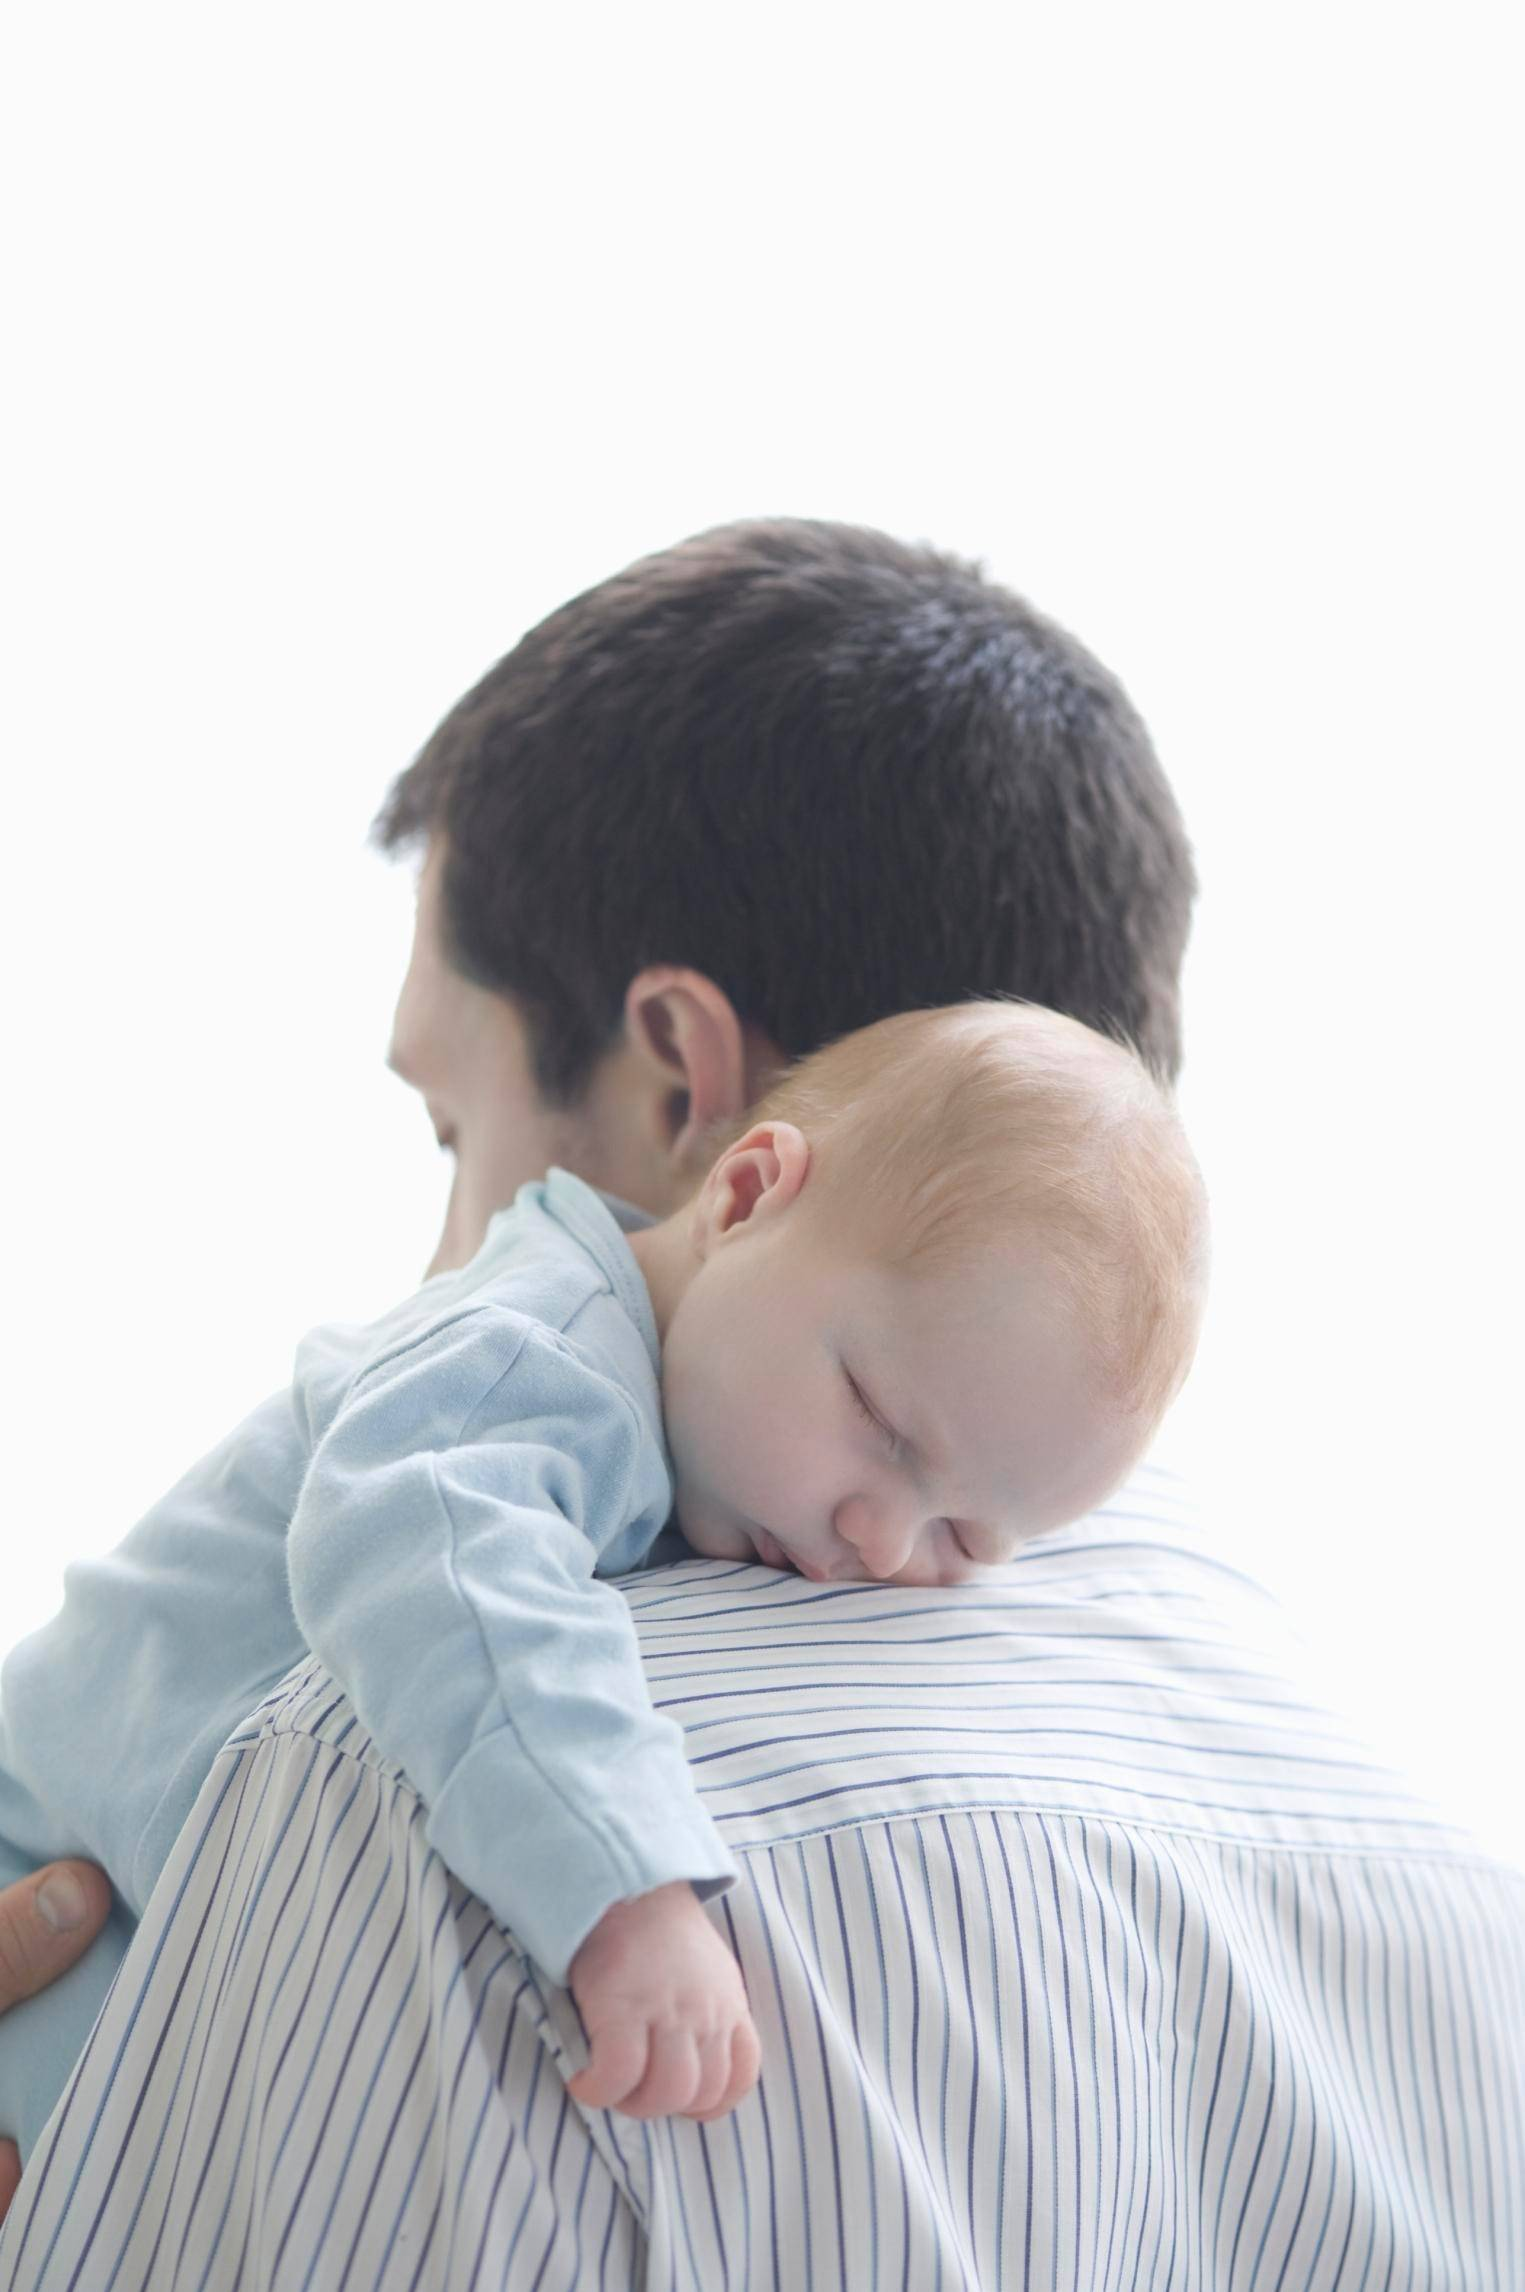 New fathers want to spend some time home with baby, but not at the expense of a paycheck.